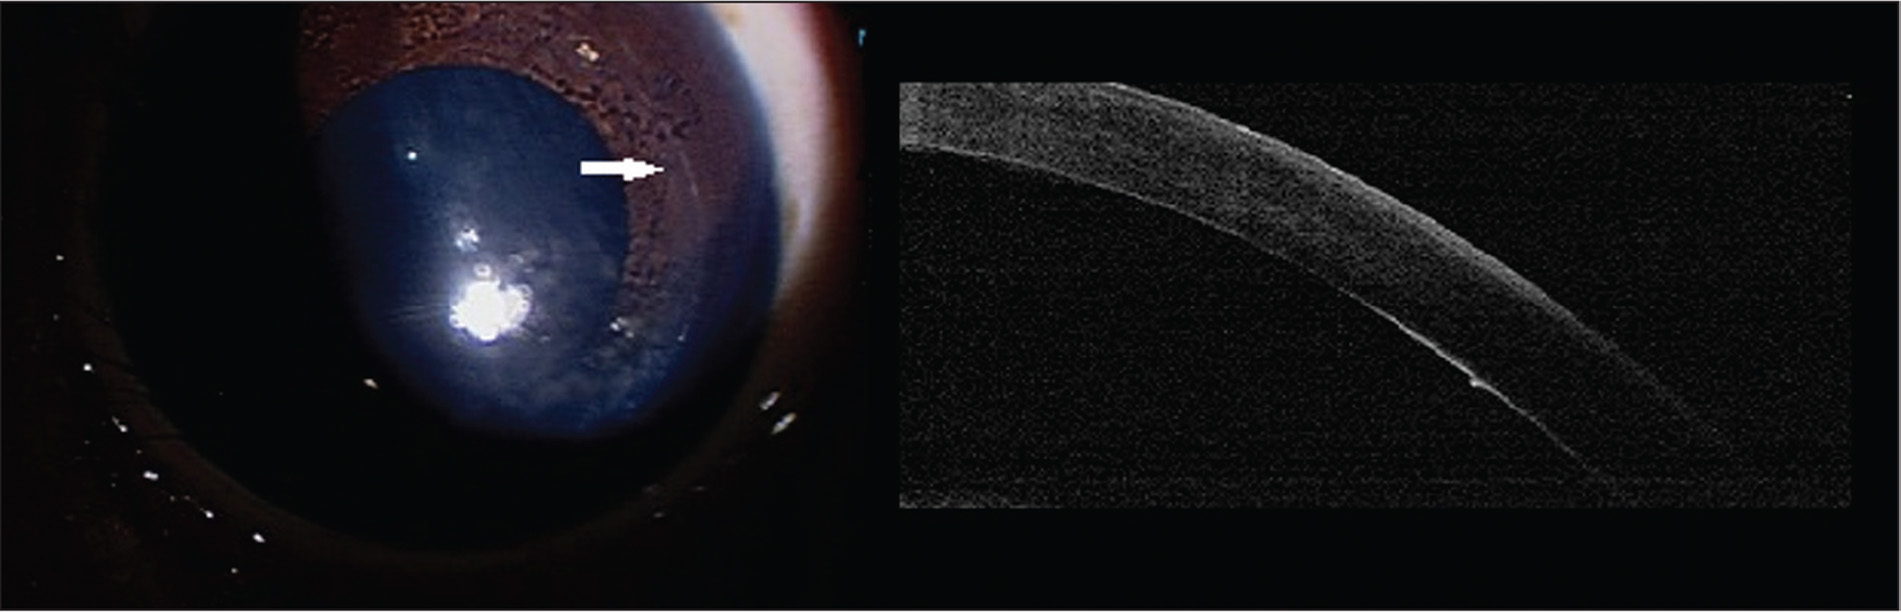 External photograph and anterior segment optical coherence tomography (AS-OCT) of patient 2. Peripheral, circumferential Haab stria is seen parallel to the limbus outside the visual axis with concurrent corneal opacity (arrow, left). AS-OCT demonstrated a smooth thickened protruding edge of the Haab stria (right).